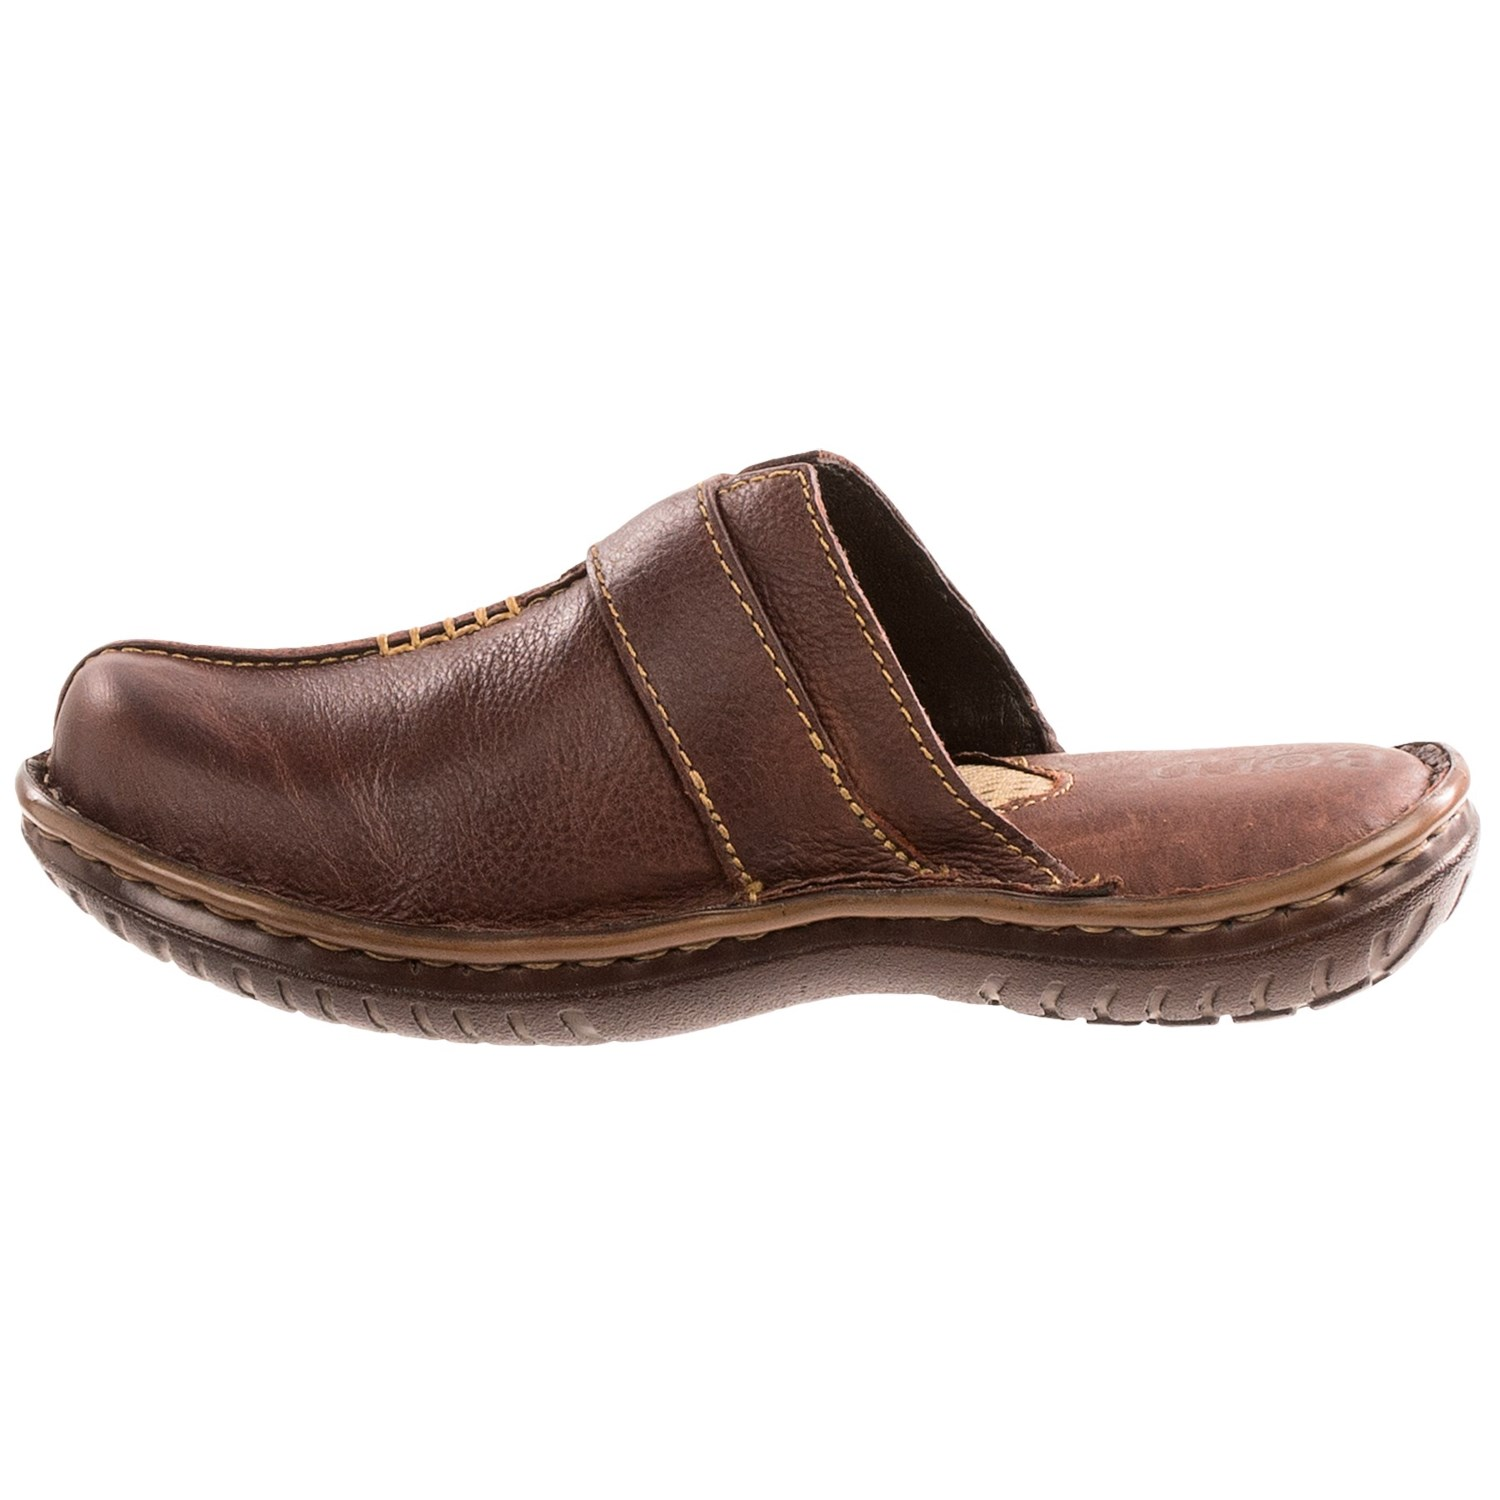 Dansko Clogs Outlet